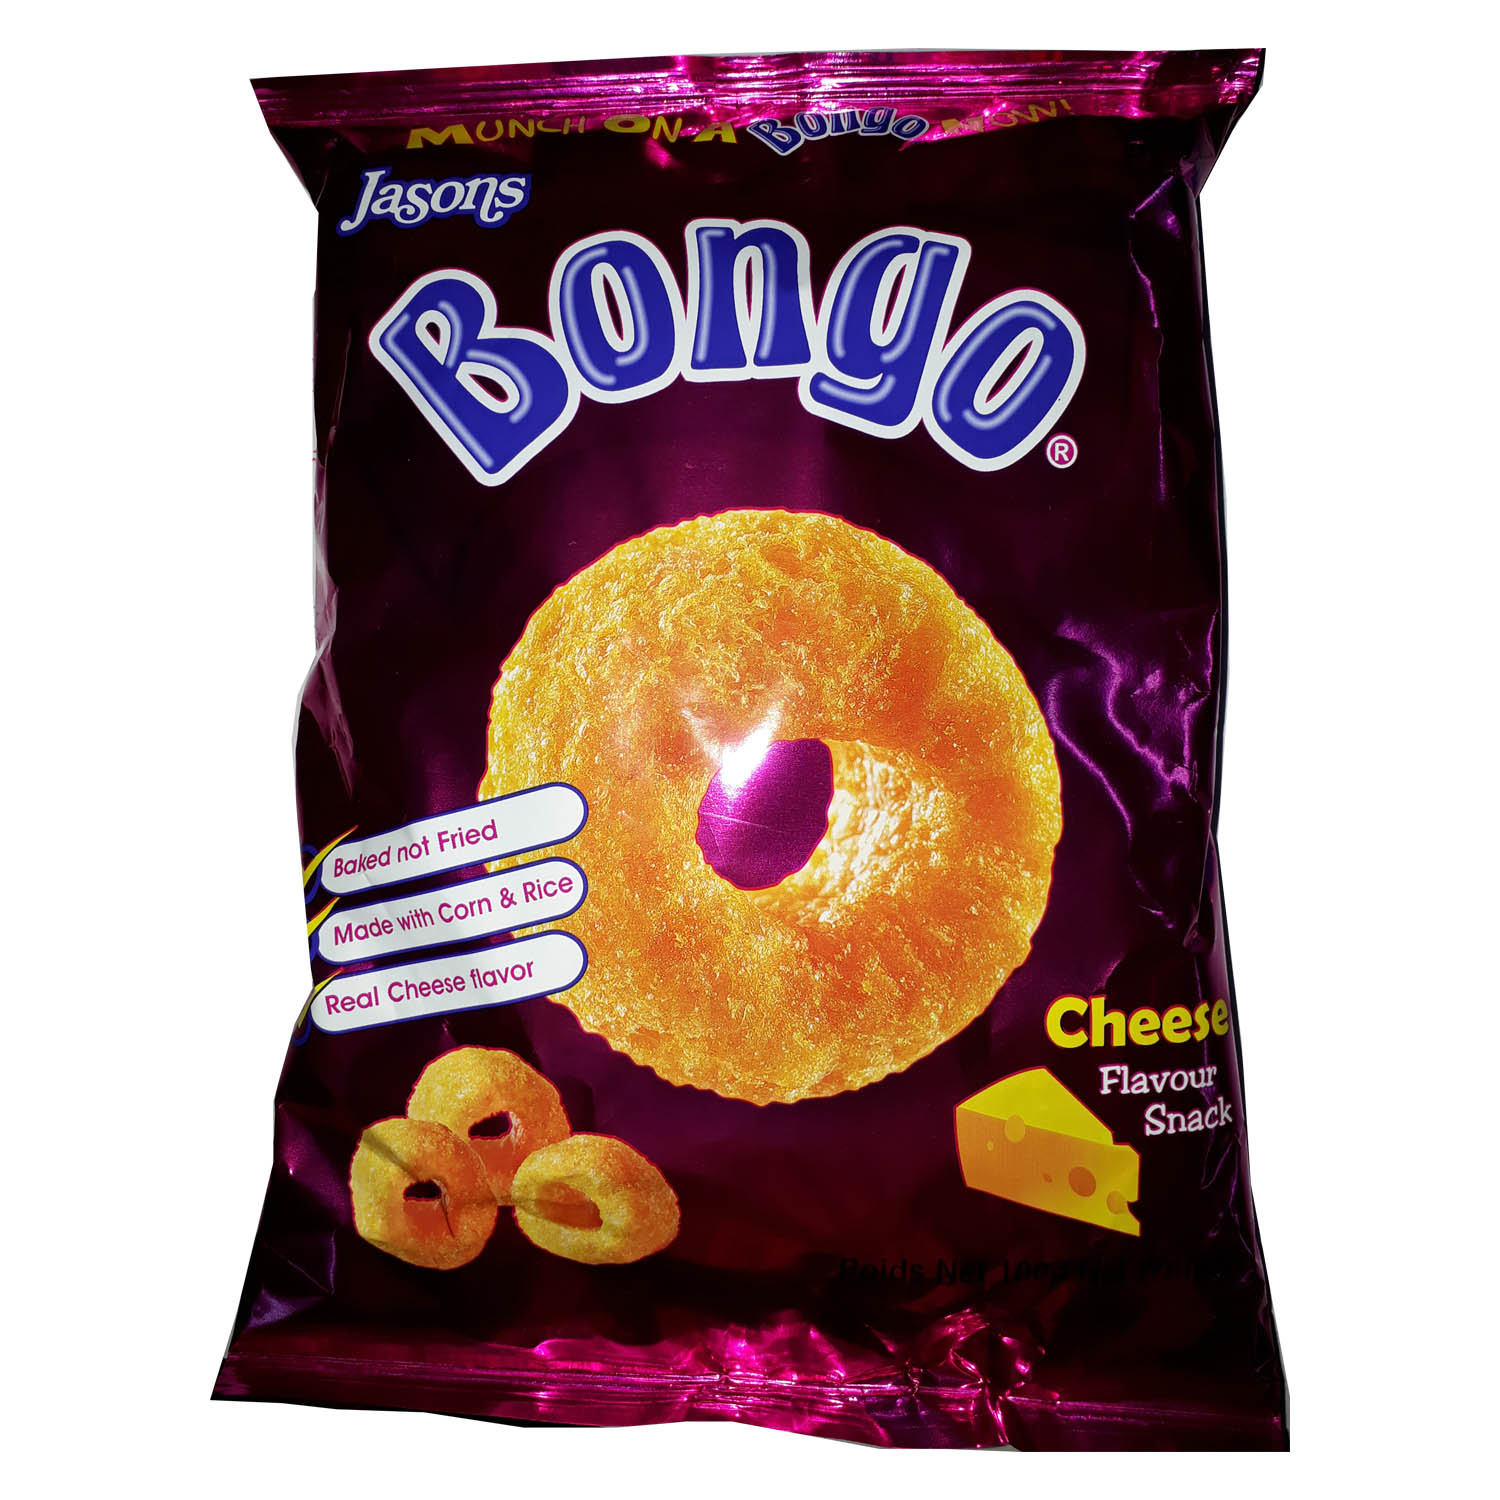 Jasons Bongo Snacks - Cheese 100g